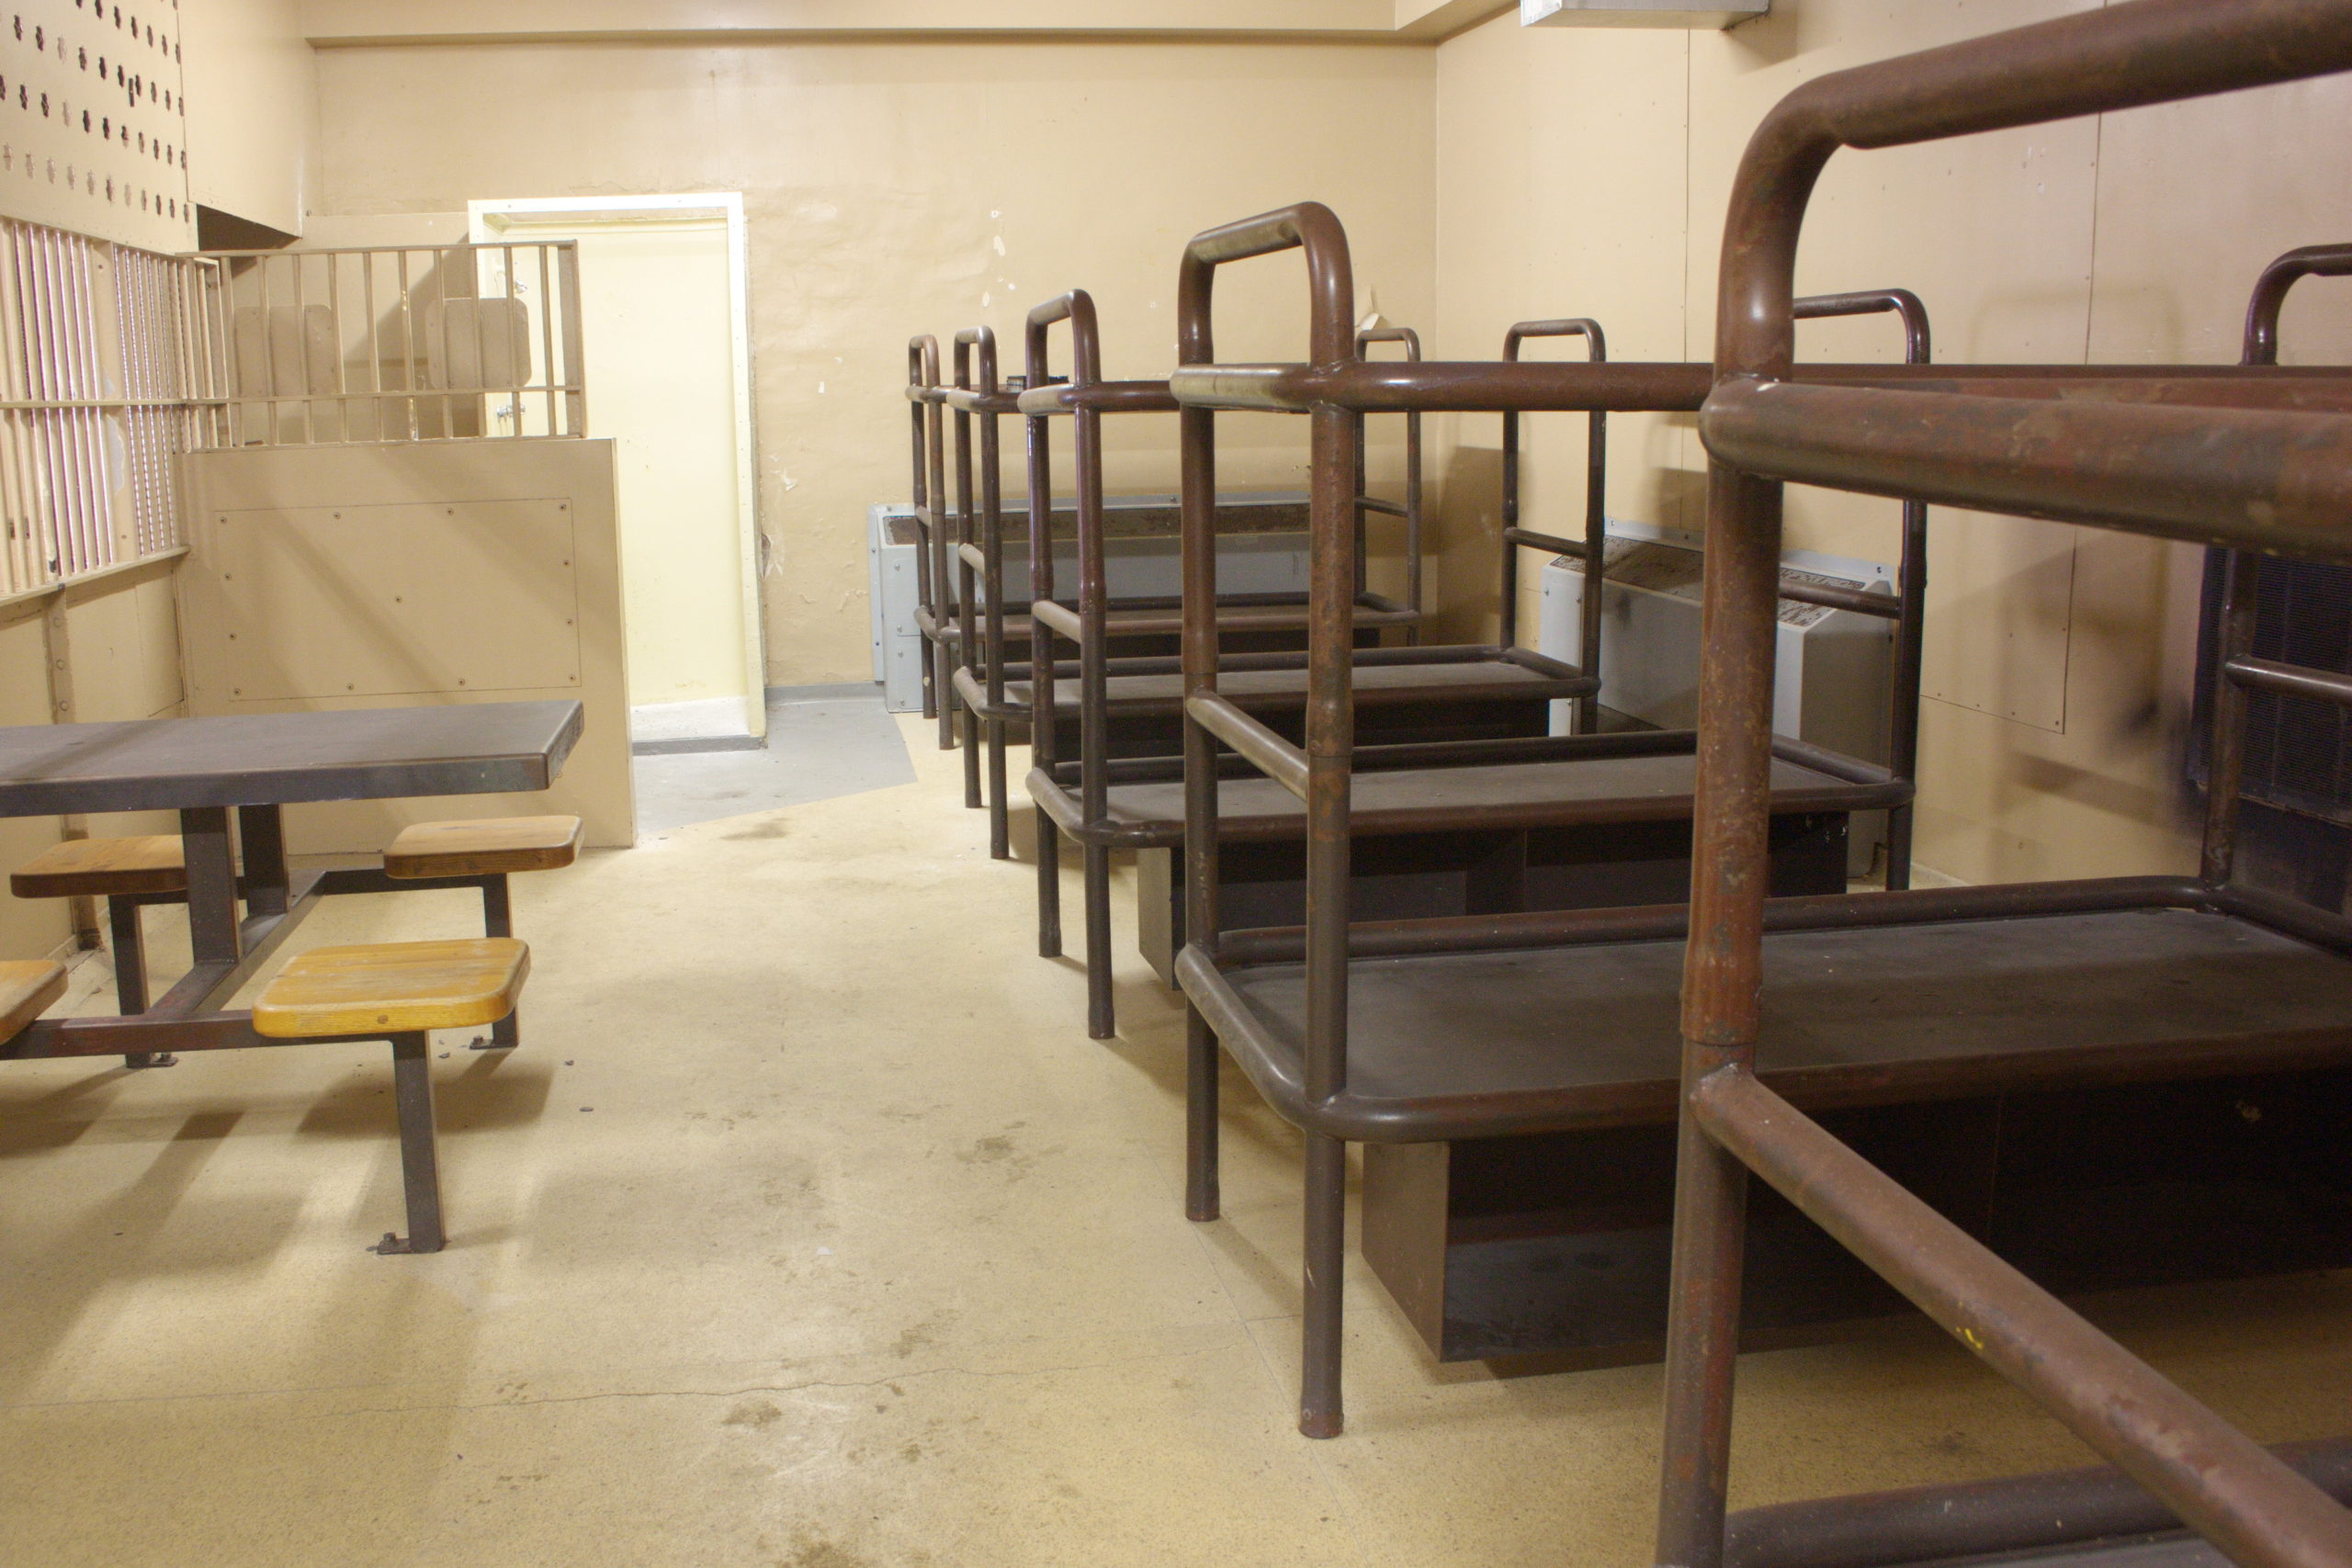 Chatham Jail Dormitory Cell